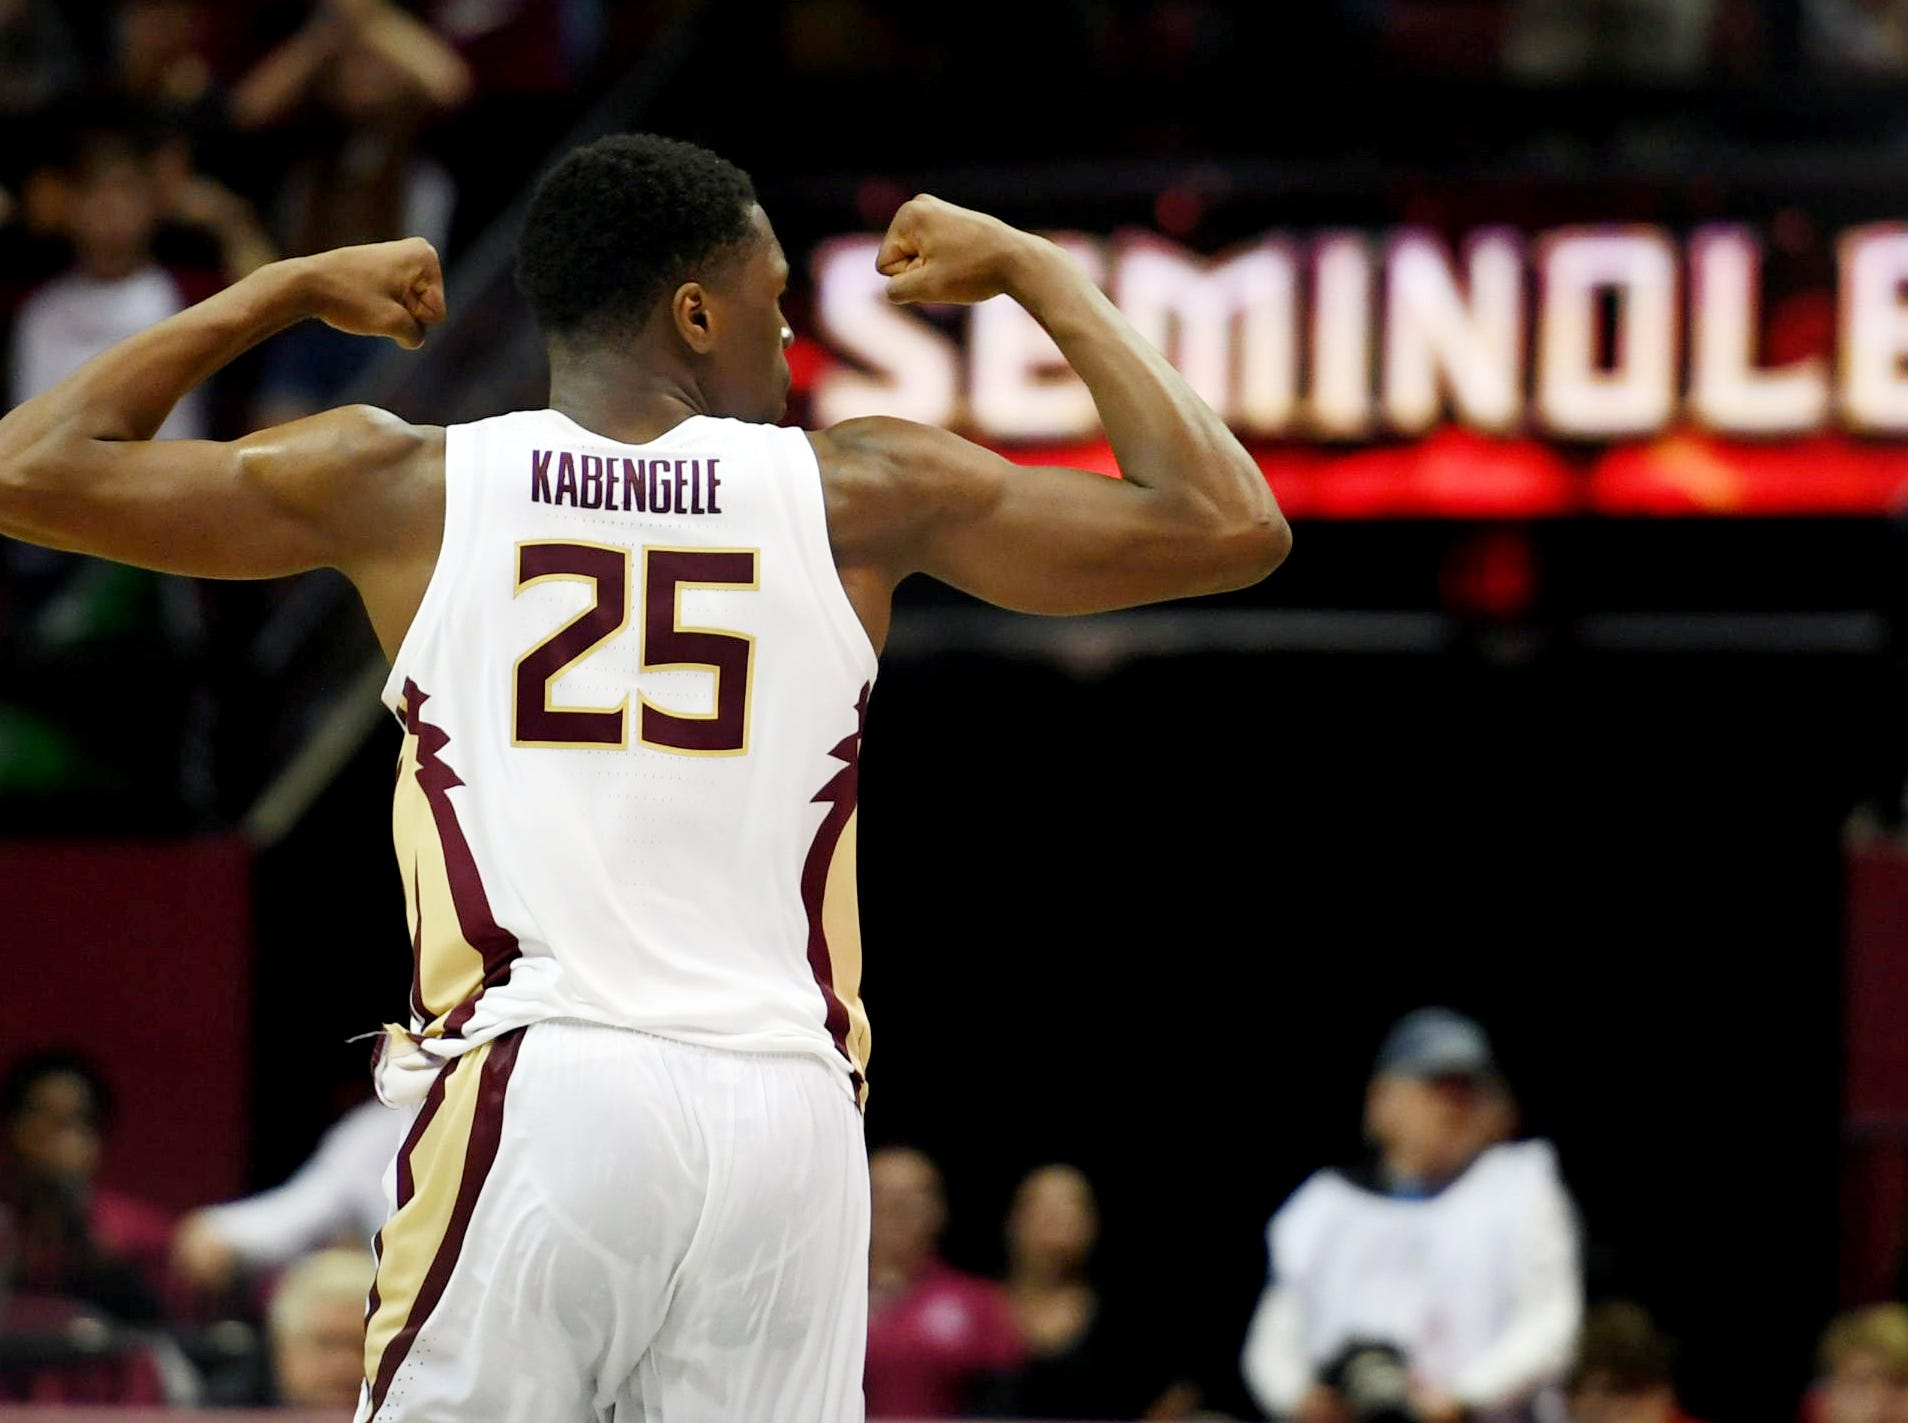 Feb 9, 2019; Tallahassee, FL, USA; Florida State Seminoles forward Mfiondu Kabengele (25) reacts during overtime against the Louisville Cardinals at Donald L. Tucker Center. Mandatory Credit: Melina Myers-USA TODAY Sports